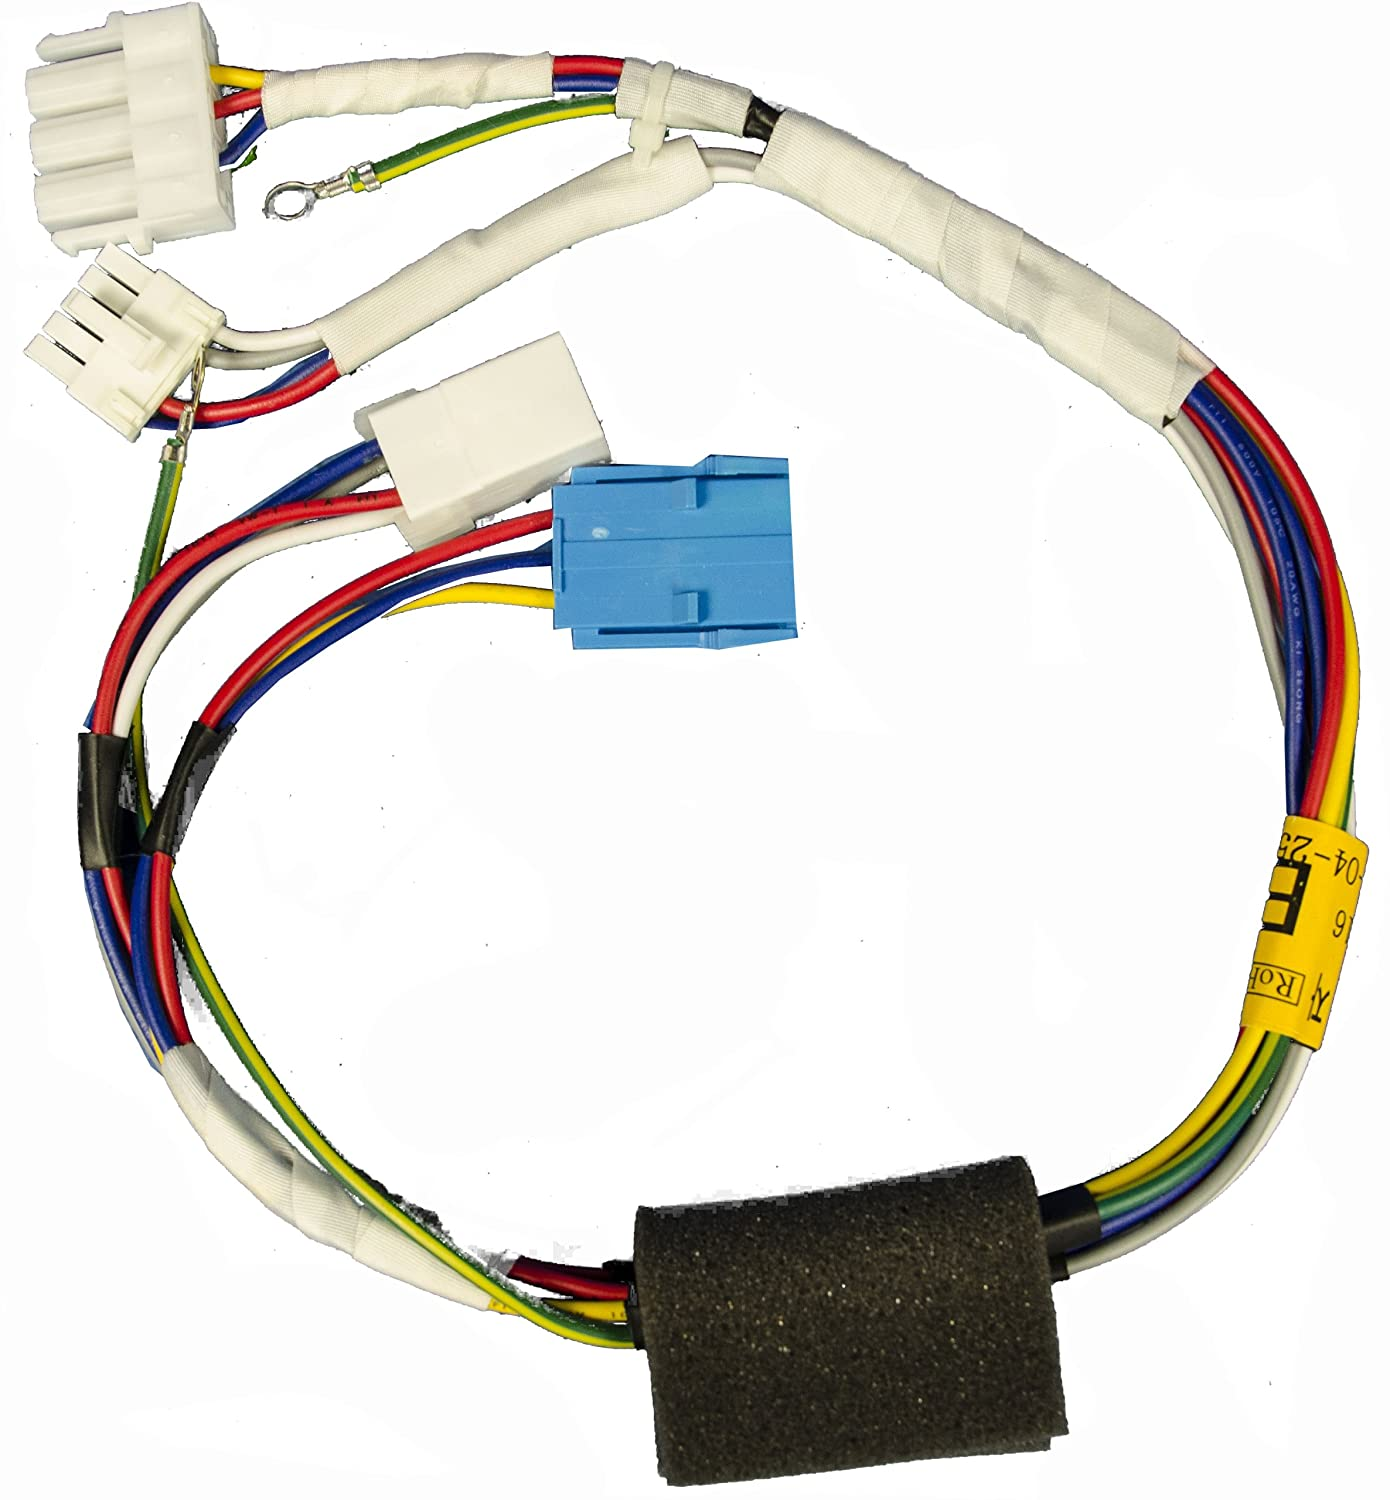 81UsaH2HtHL._SL1500_ amazon com lg electronics 6877er1016b washing machine multi wire Wire Harness Assembly at alyssarenee.co